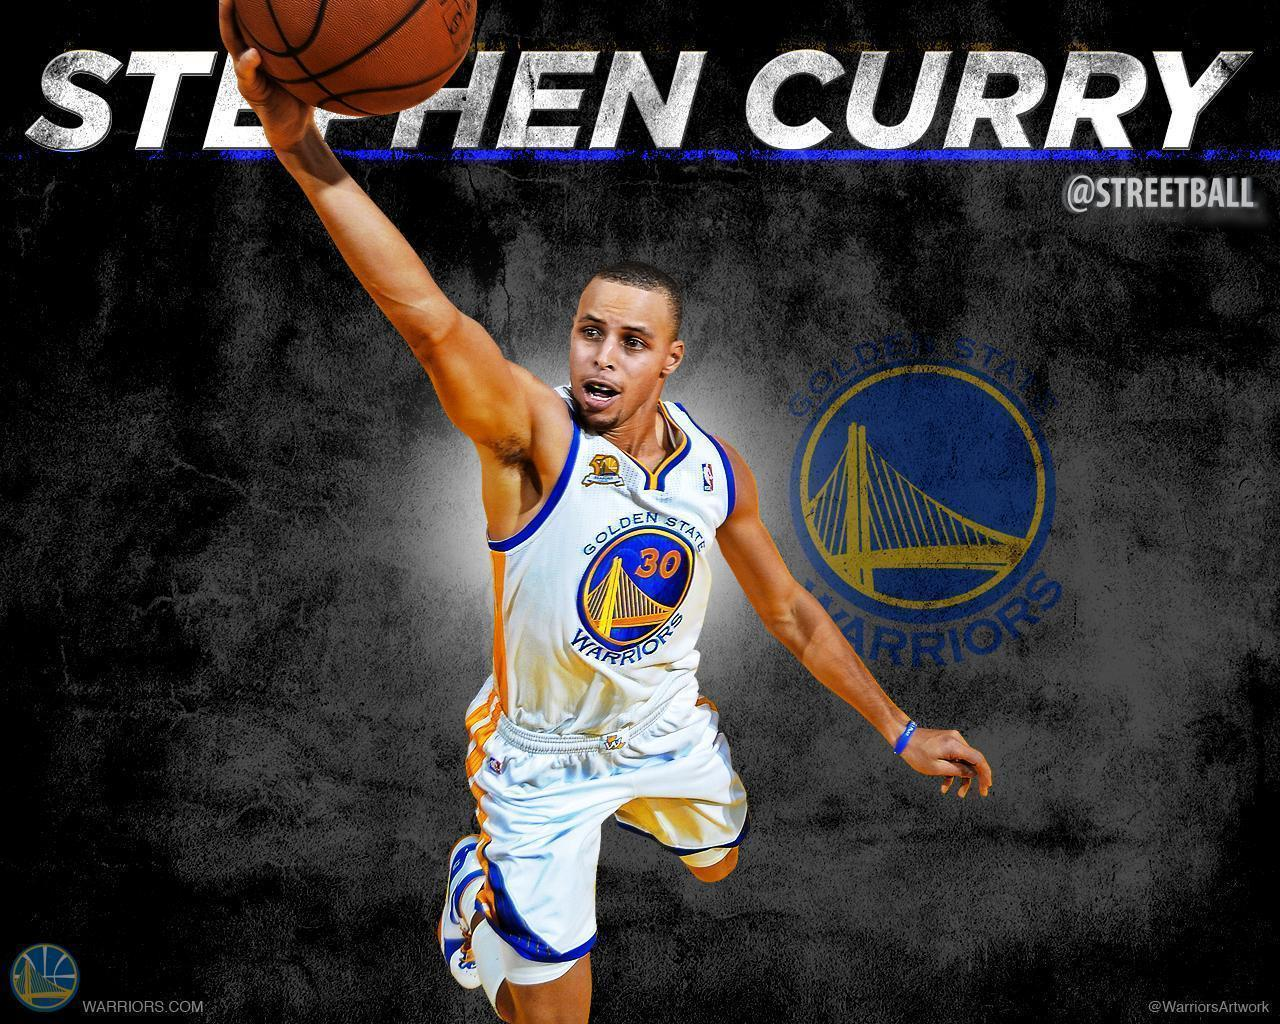 Sport Wallpaper Stephen Curry: Basketball Wallpapers 2017